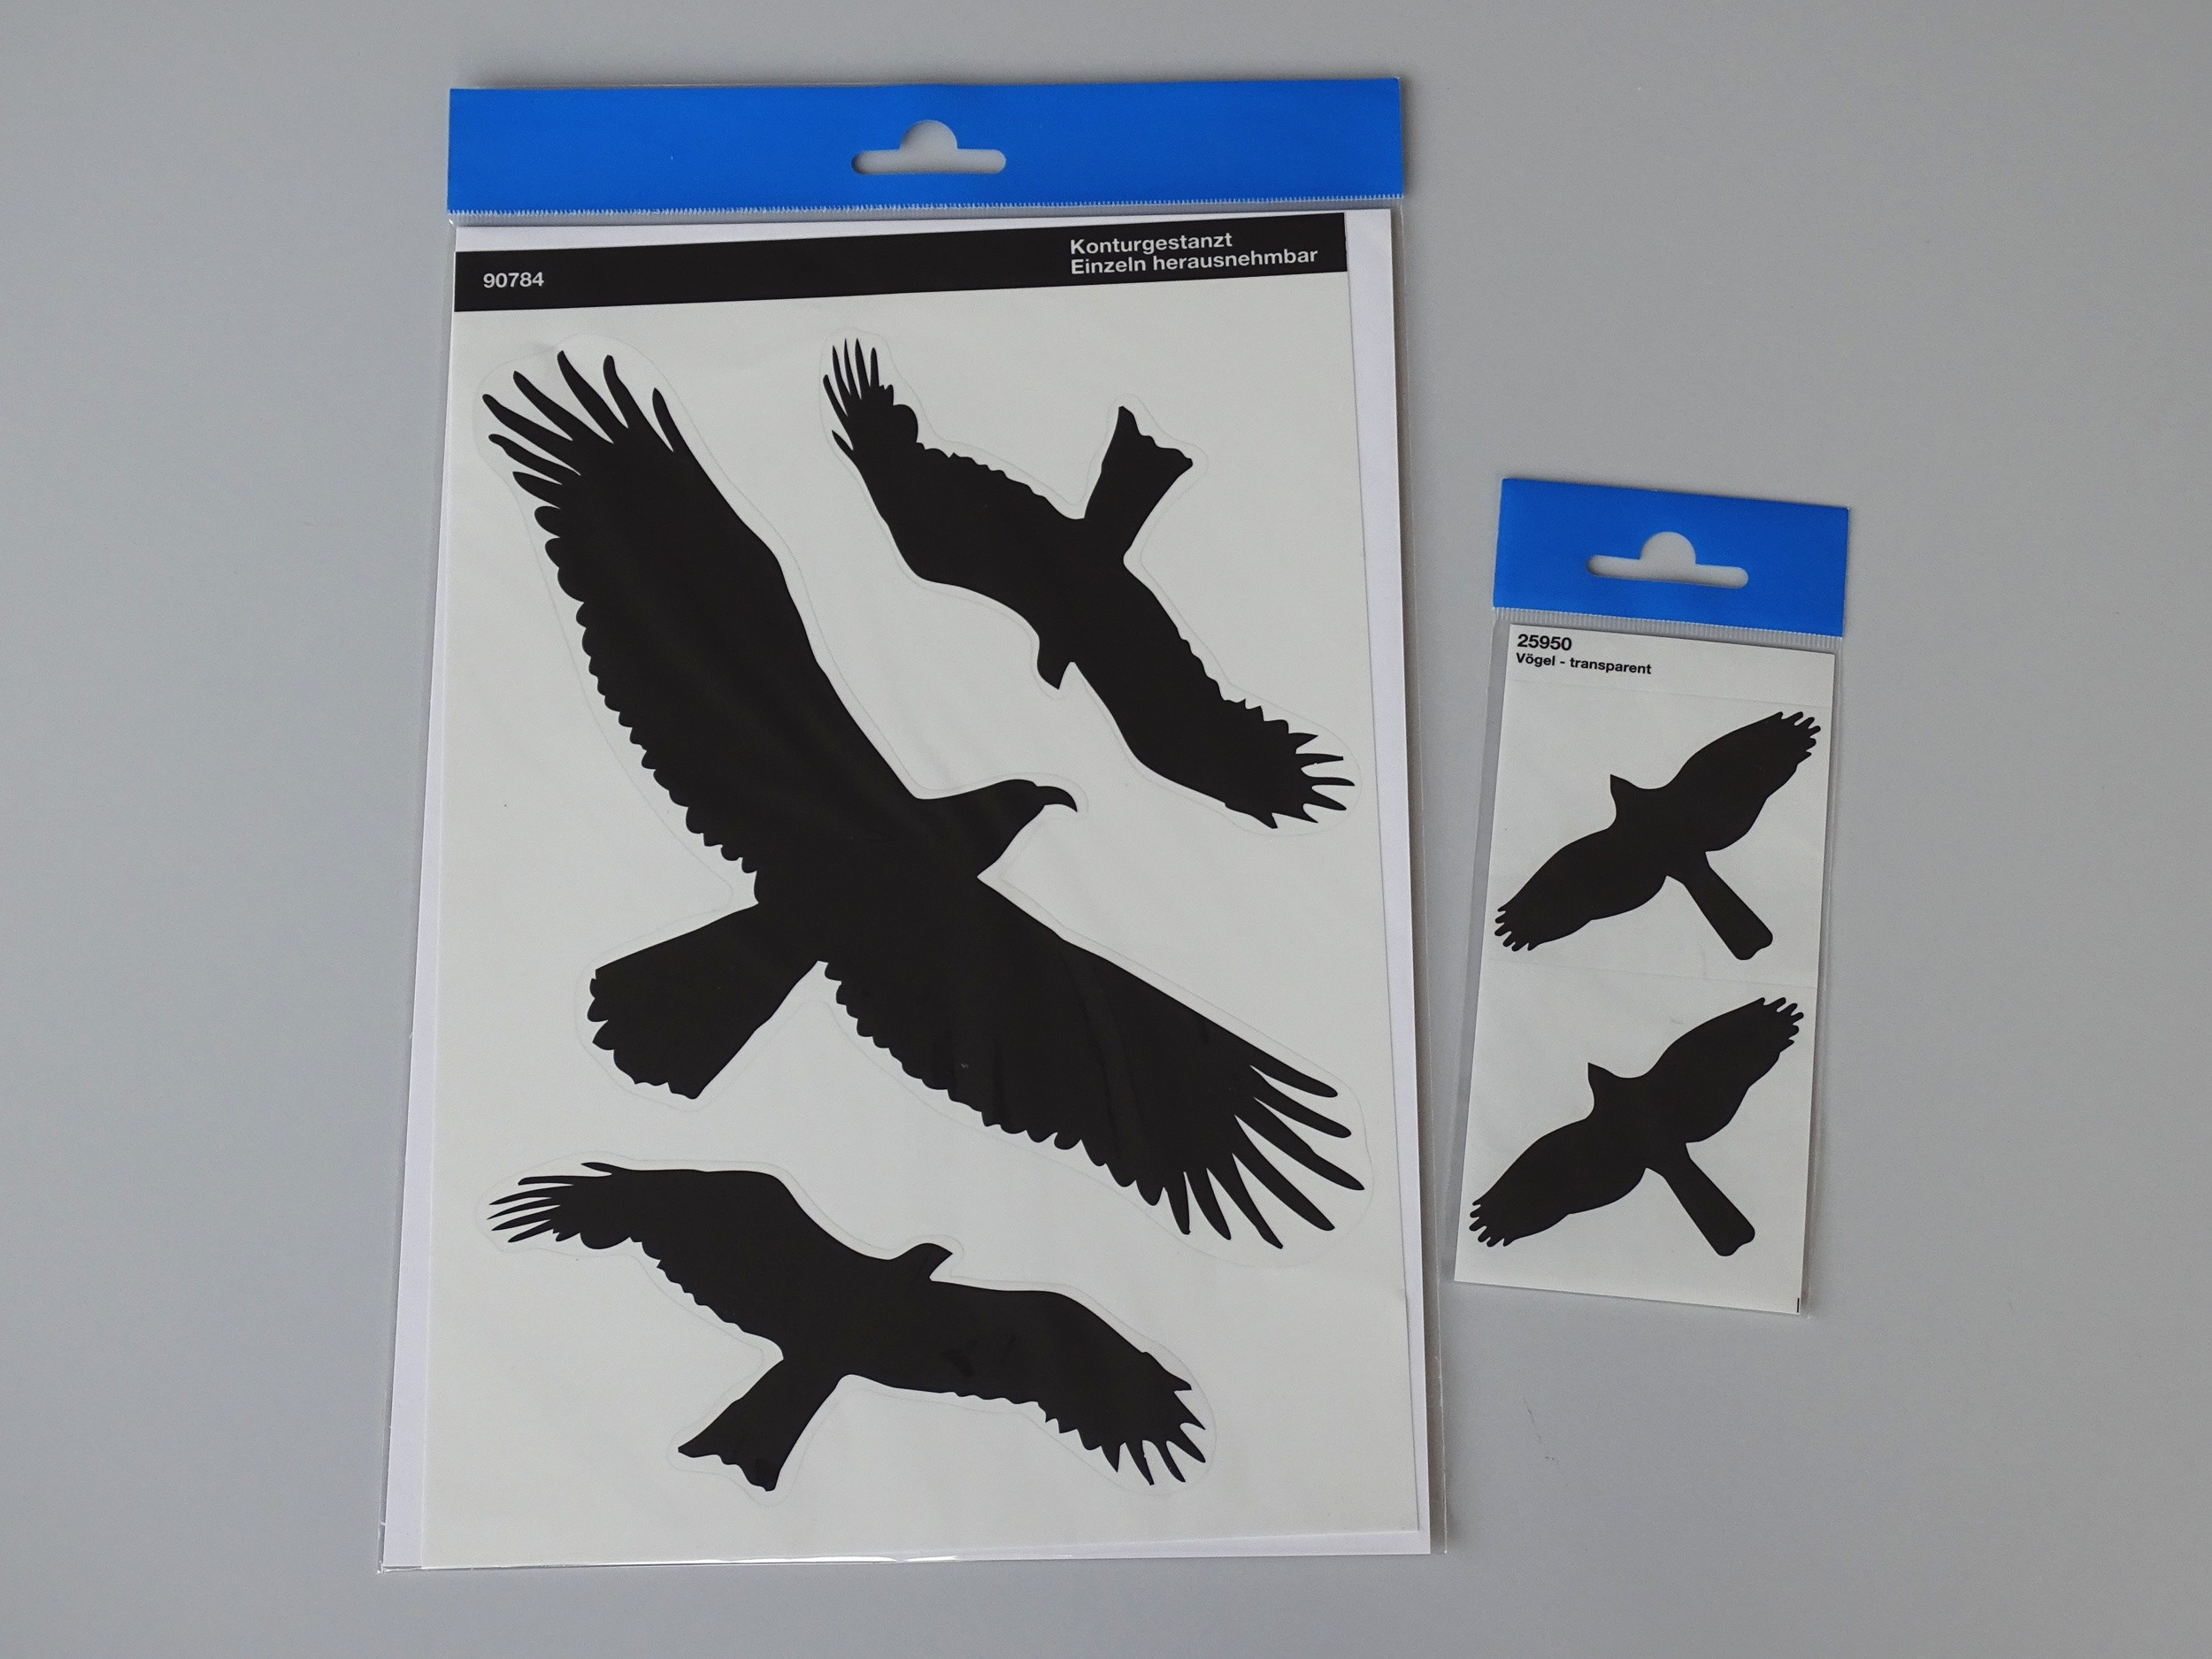 Sticker birds black 2 pieces each 115 x 290 mm – Bild 2